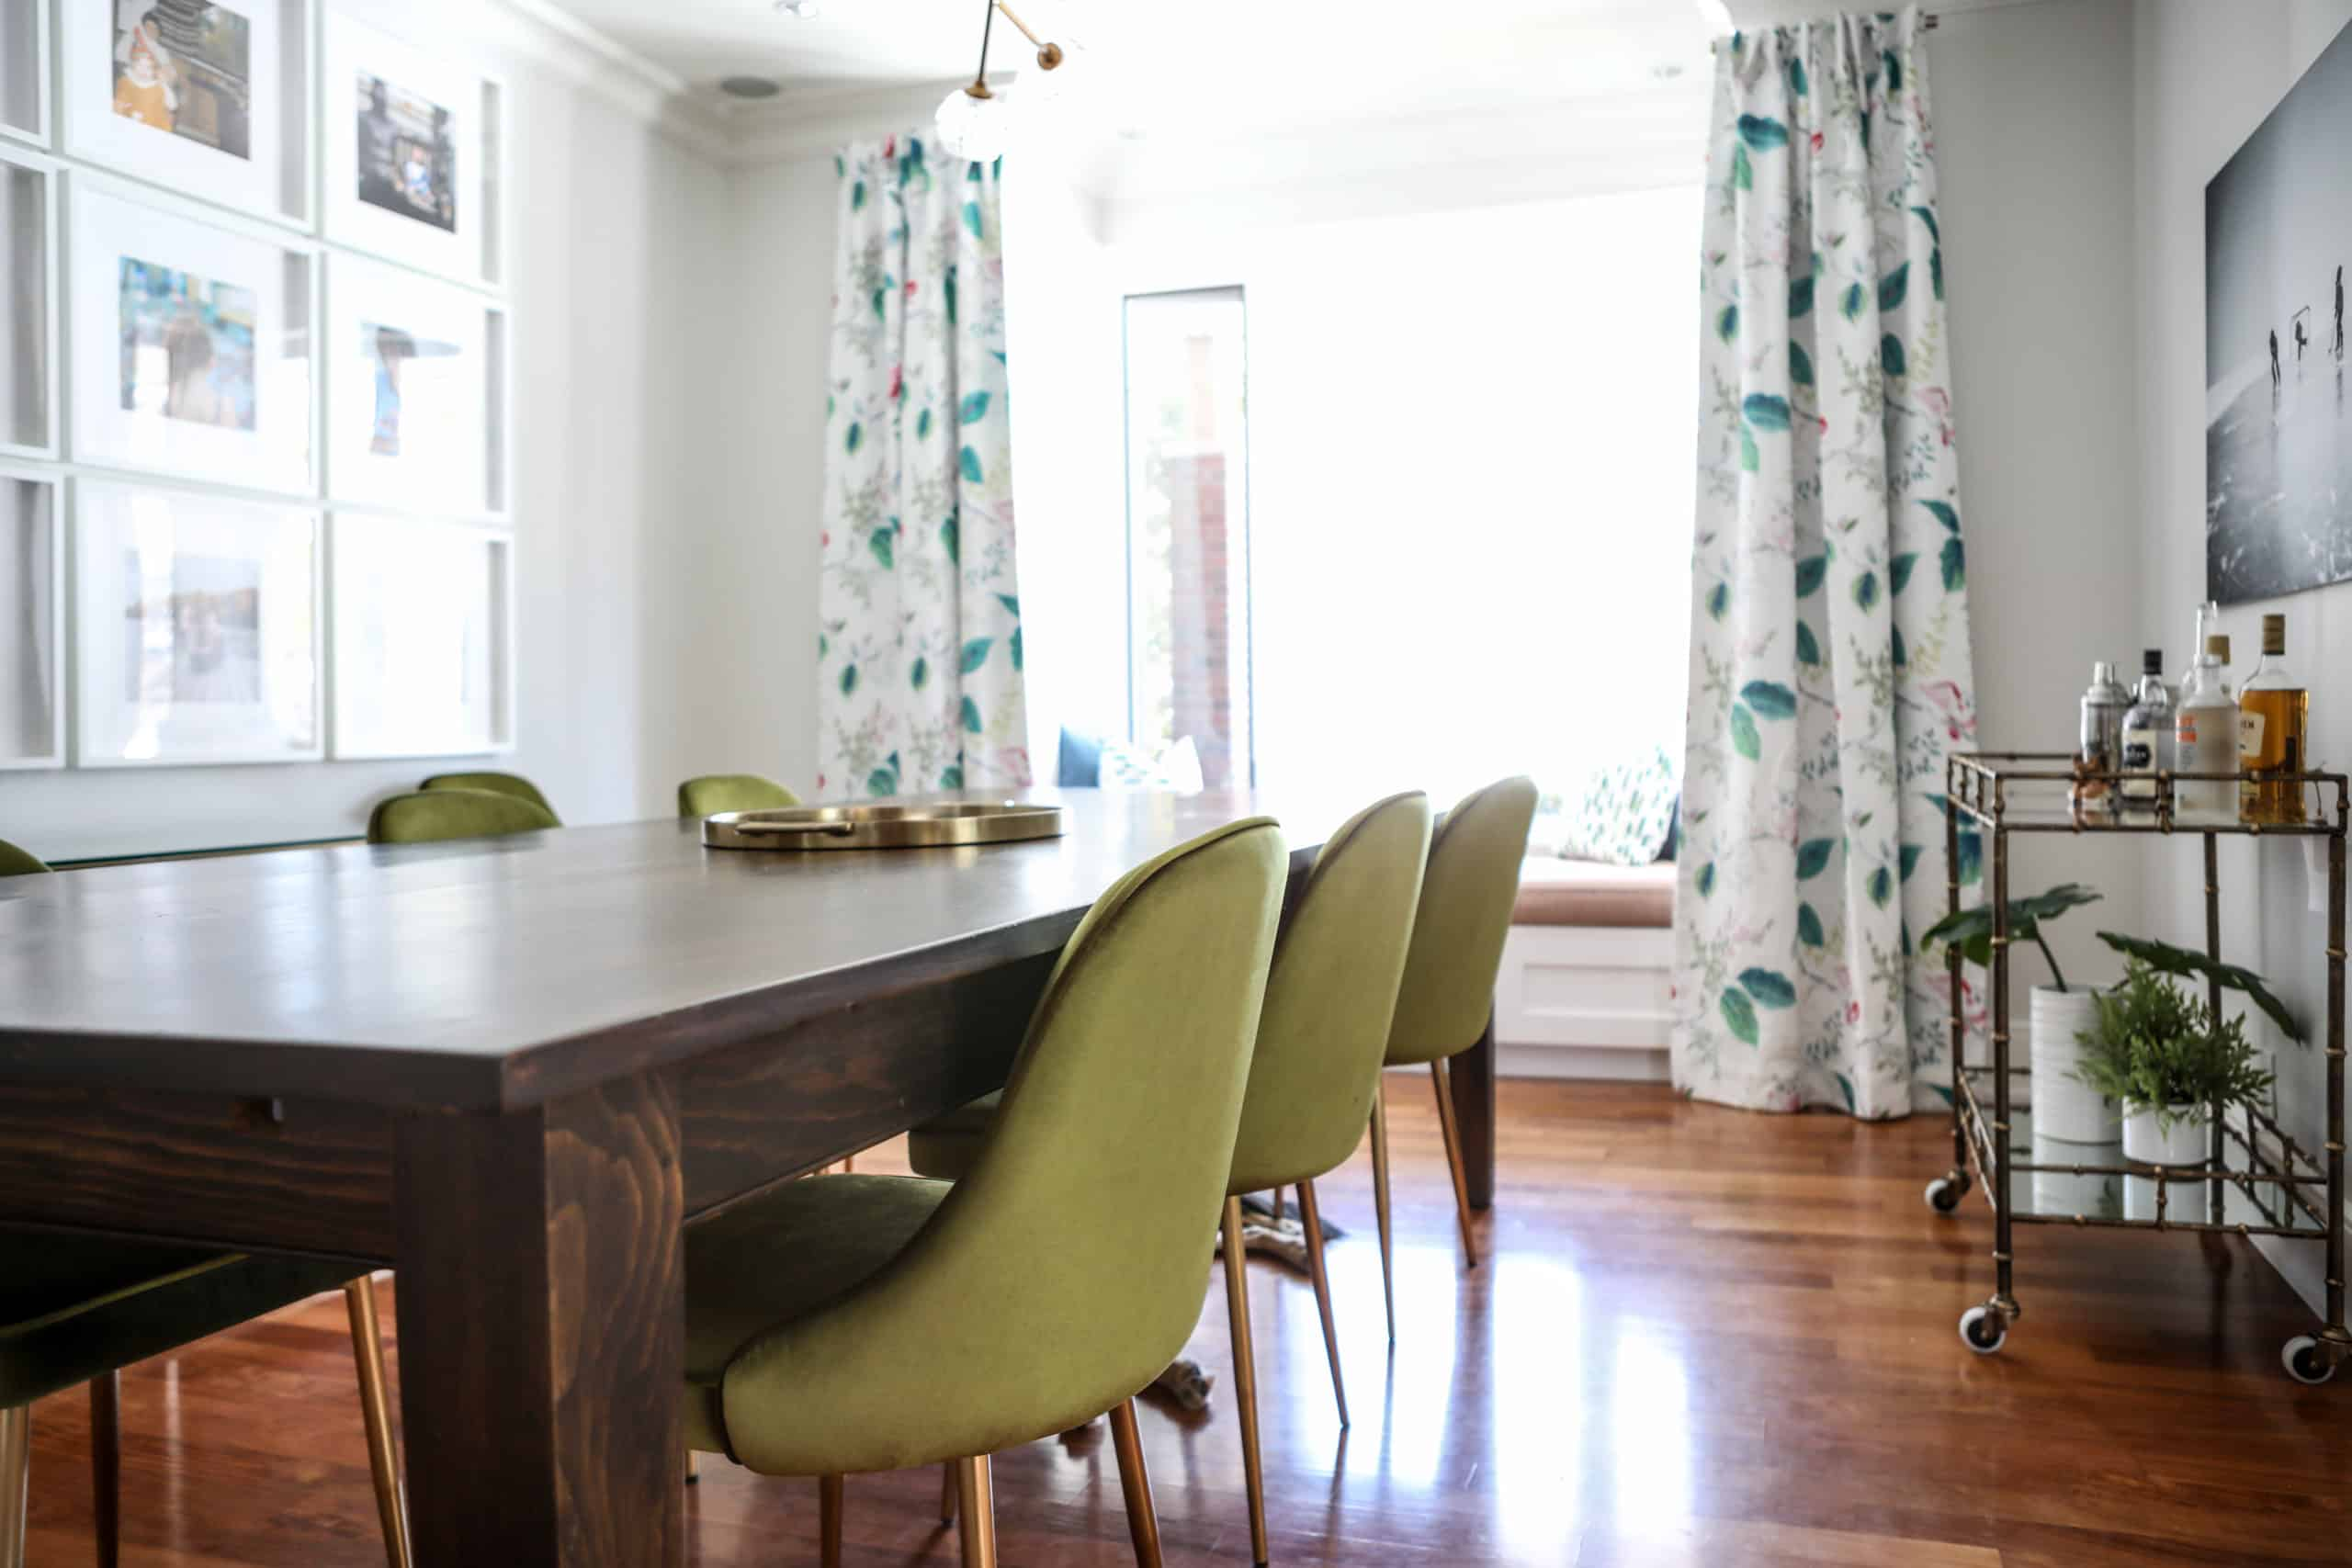 Dining room with green chairs at the table